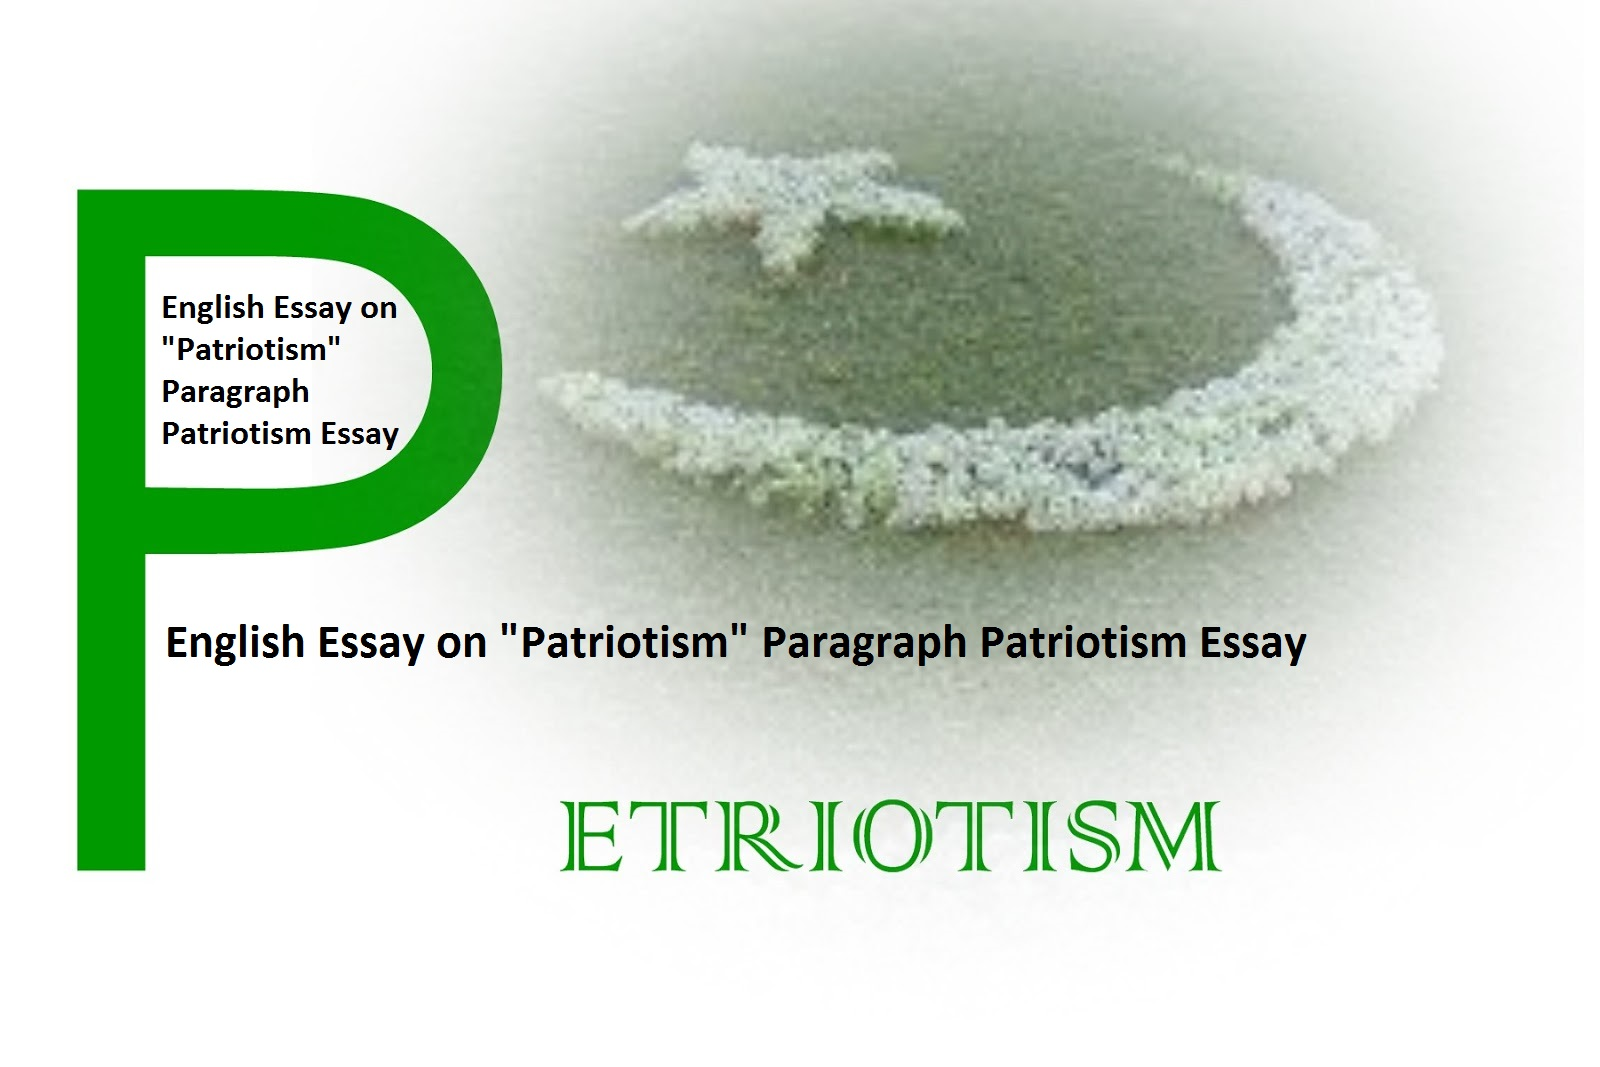 for love of country an essay on patriotism and nationalism For love of country an essay on patriotism and nationalism pdf november 12, 2017 / / uncategorized / 0 comments short essay format apa template essay describing.